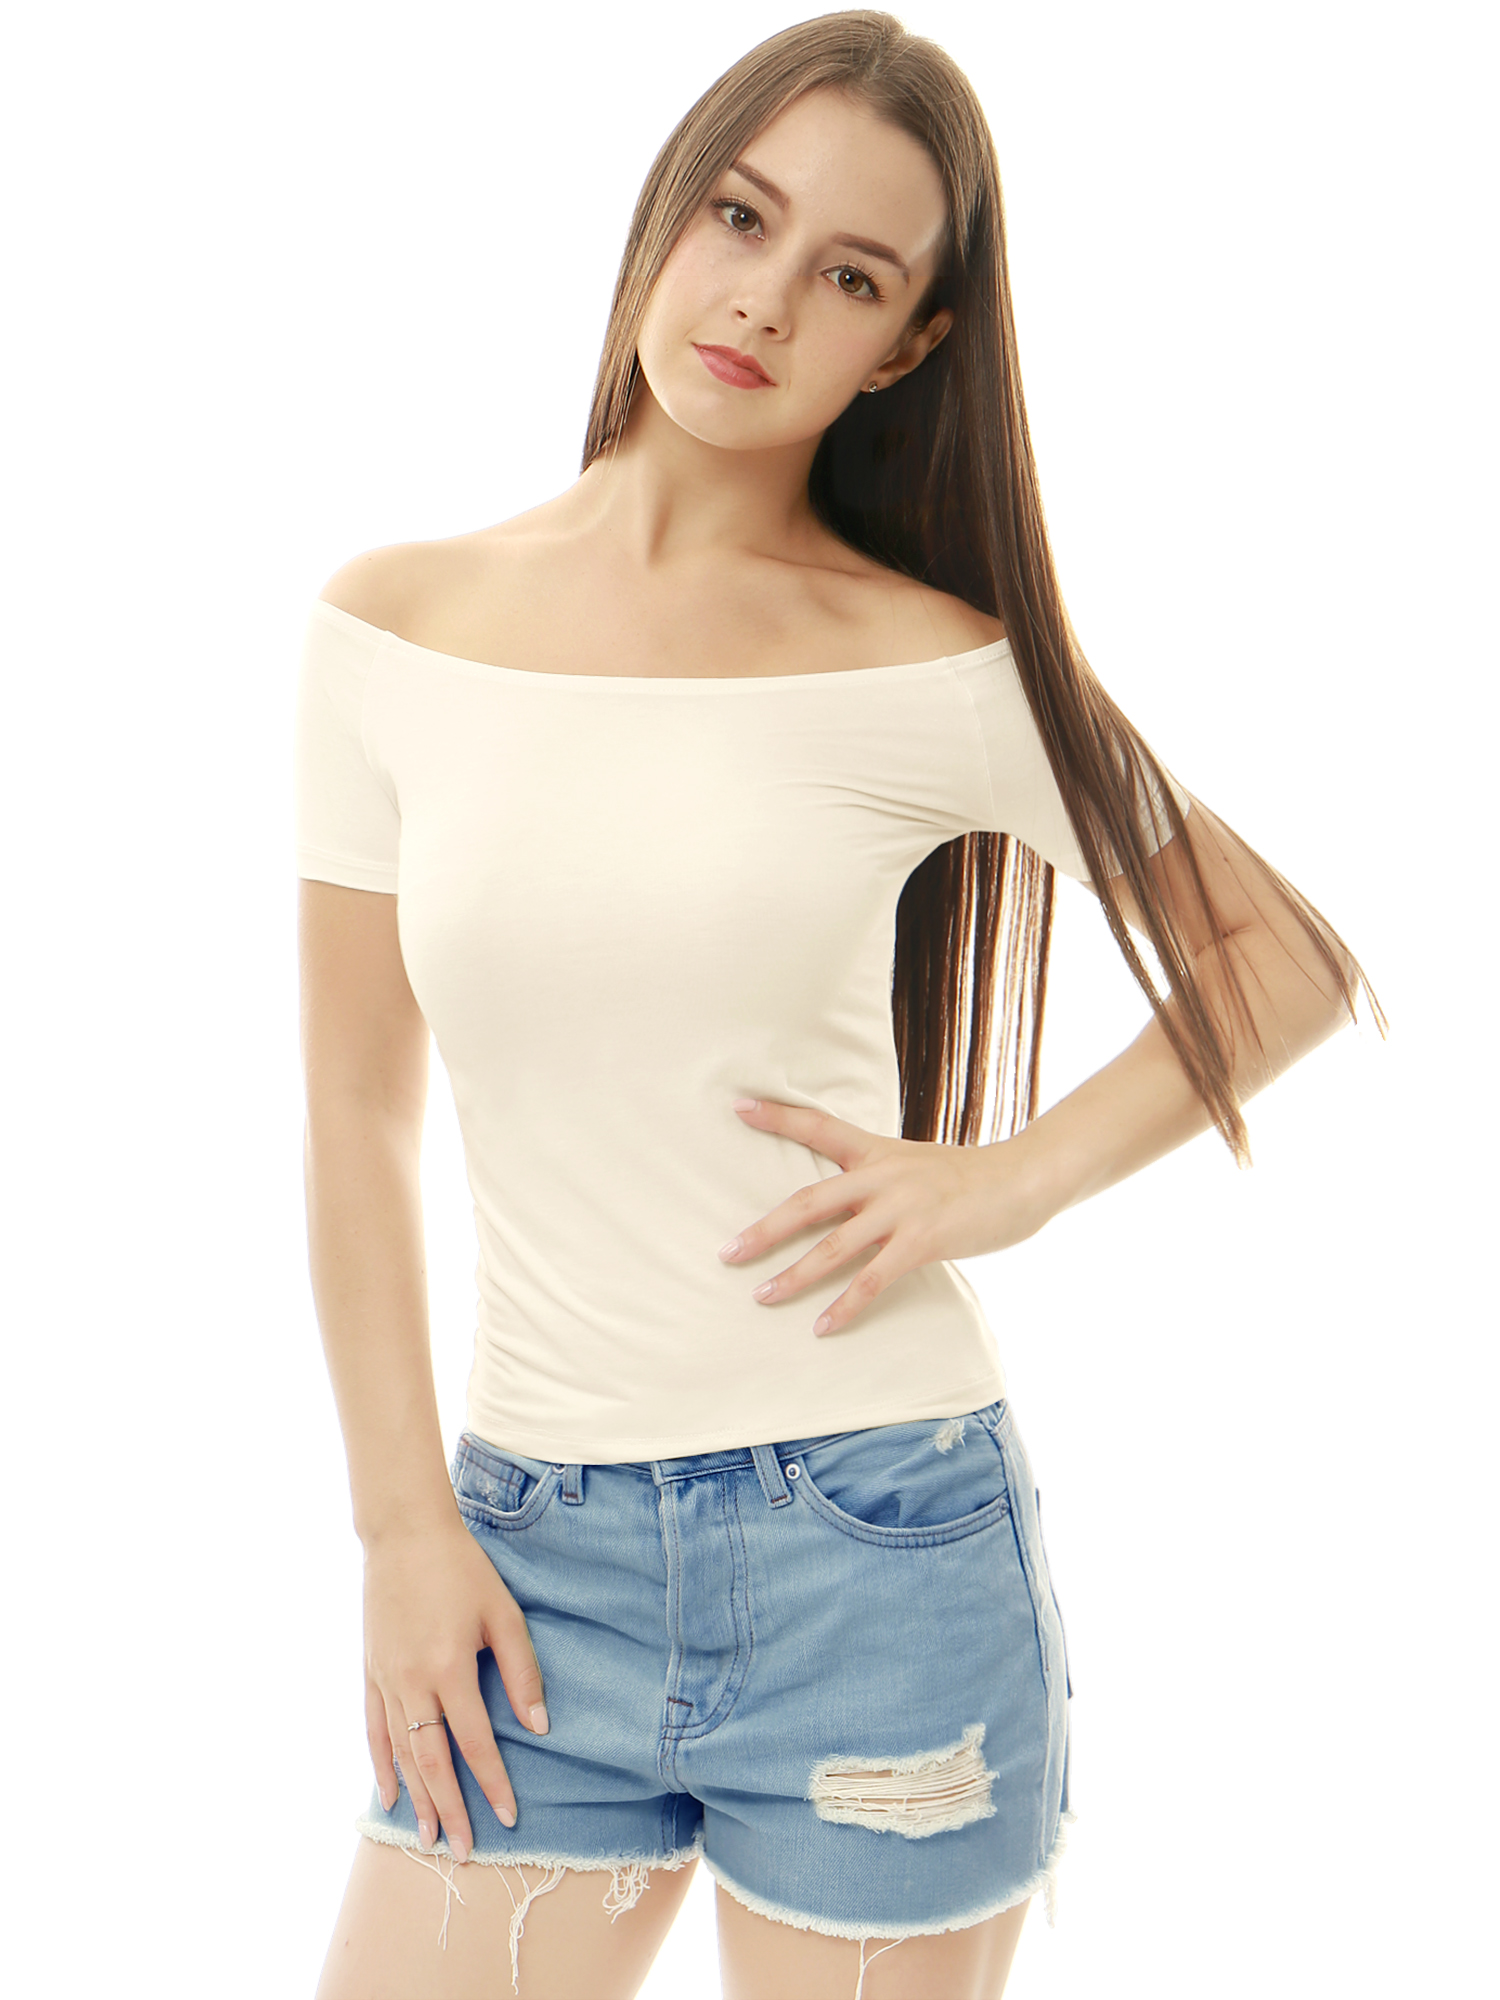 Women Short Sleeves Slim Fit Off the Shoulder Top White M